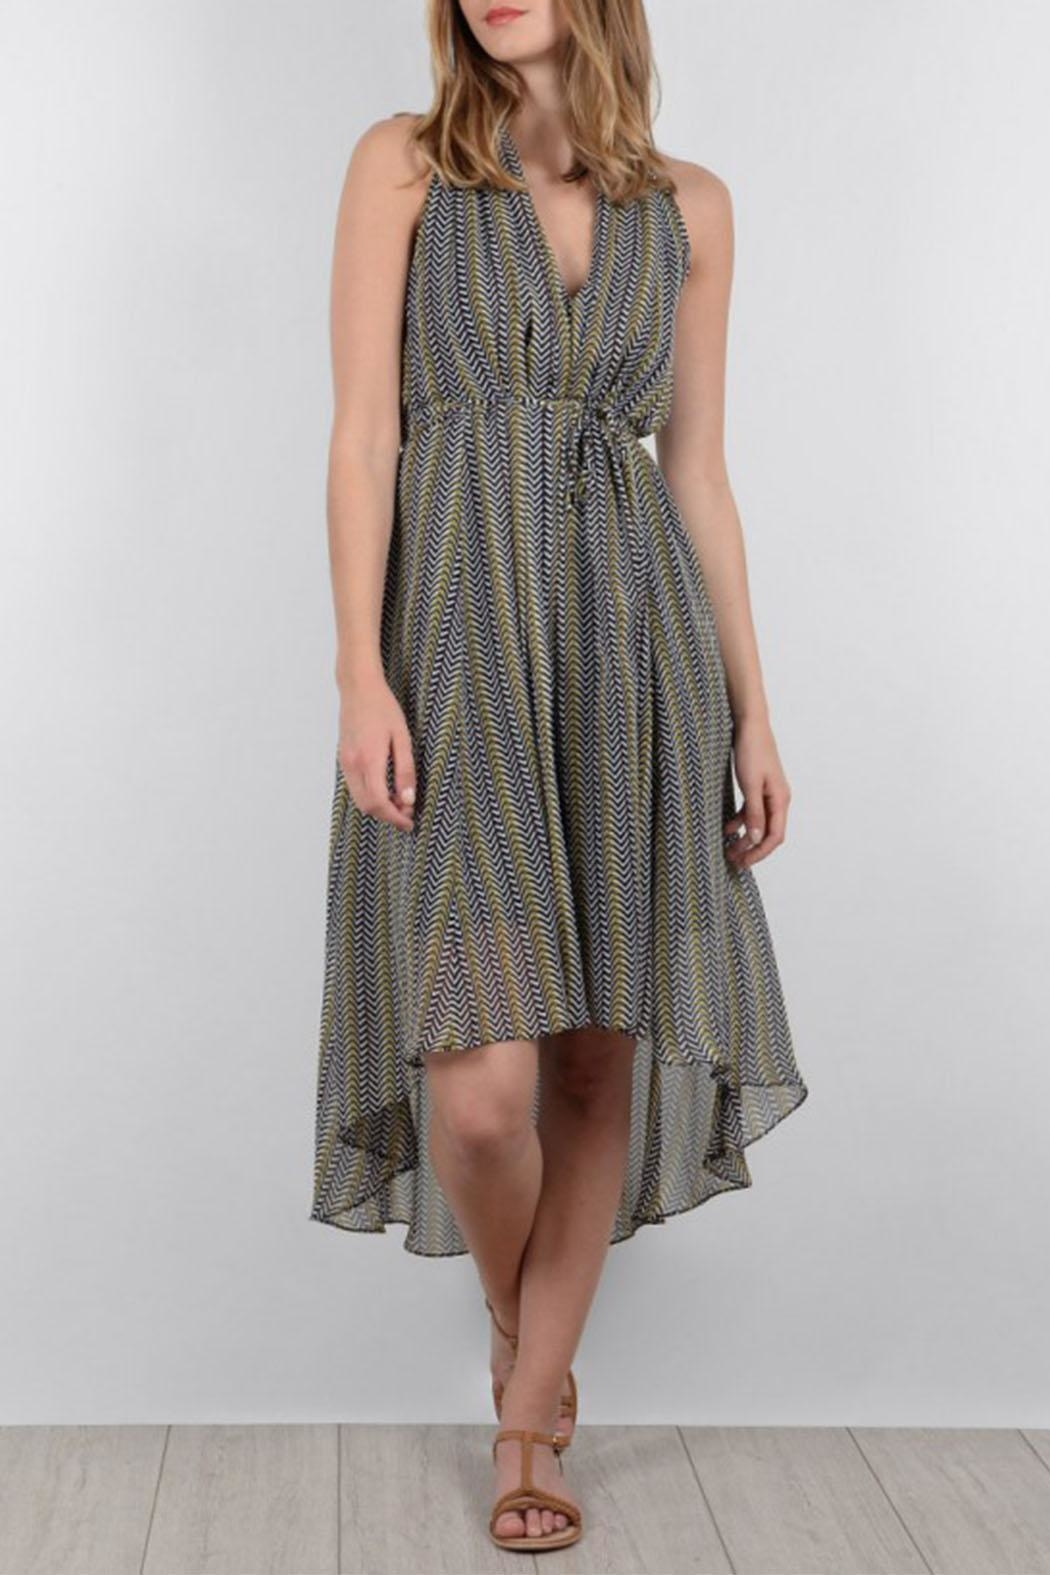 Molly Bracken Finesse Dress - Main Image